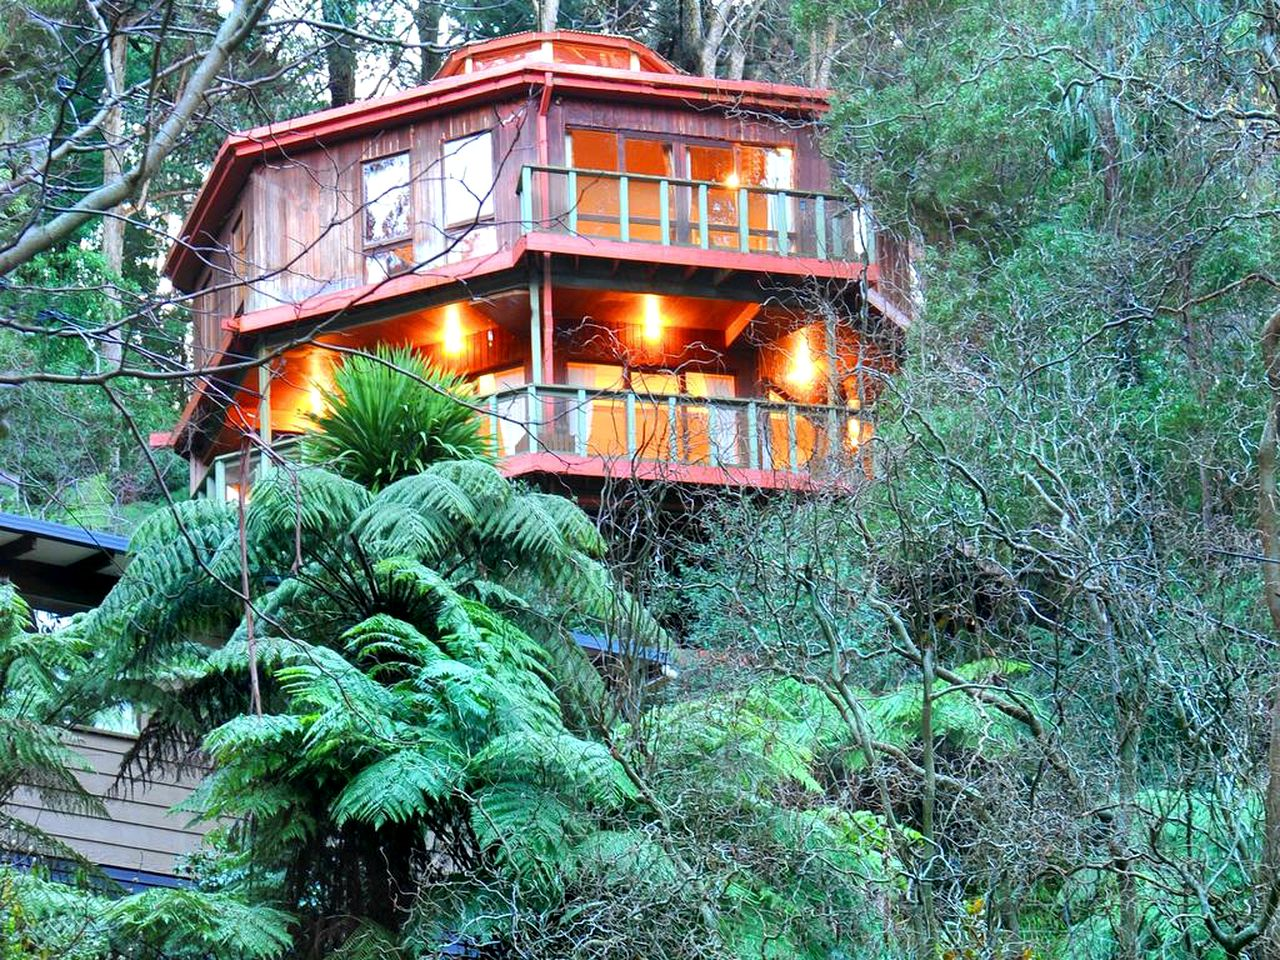 This stunning octagonal tree house, surrounded by trees and boasting views of national parks, is an ideal Dandenong Ranges accommodation